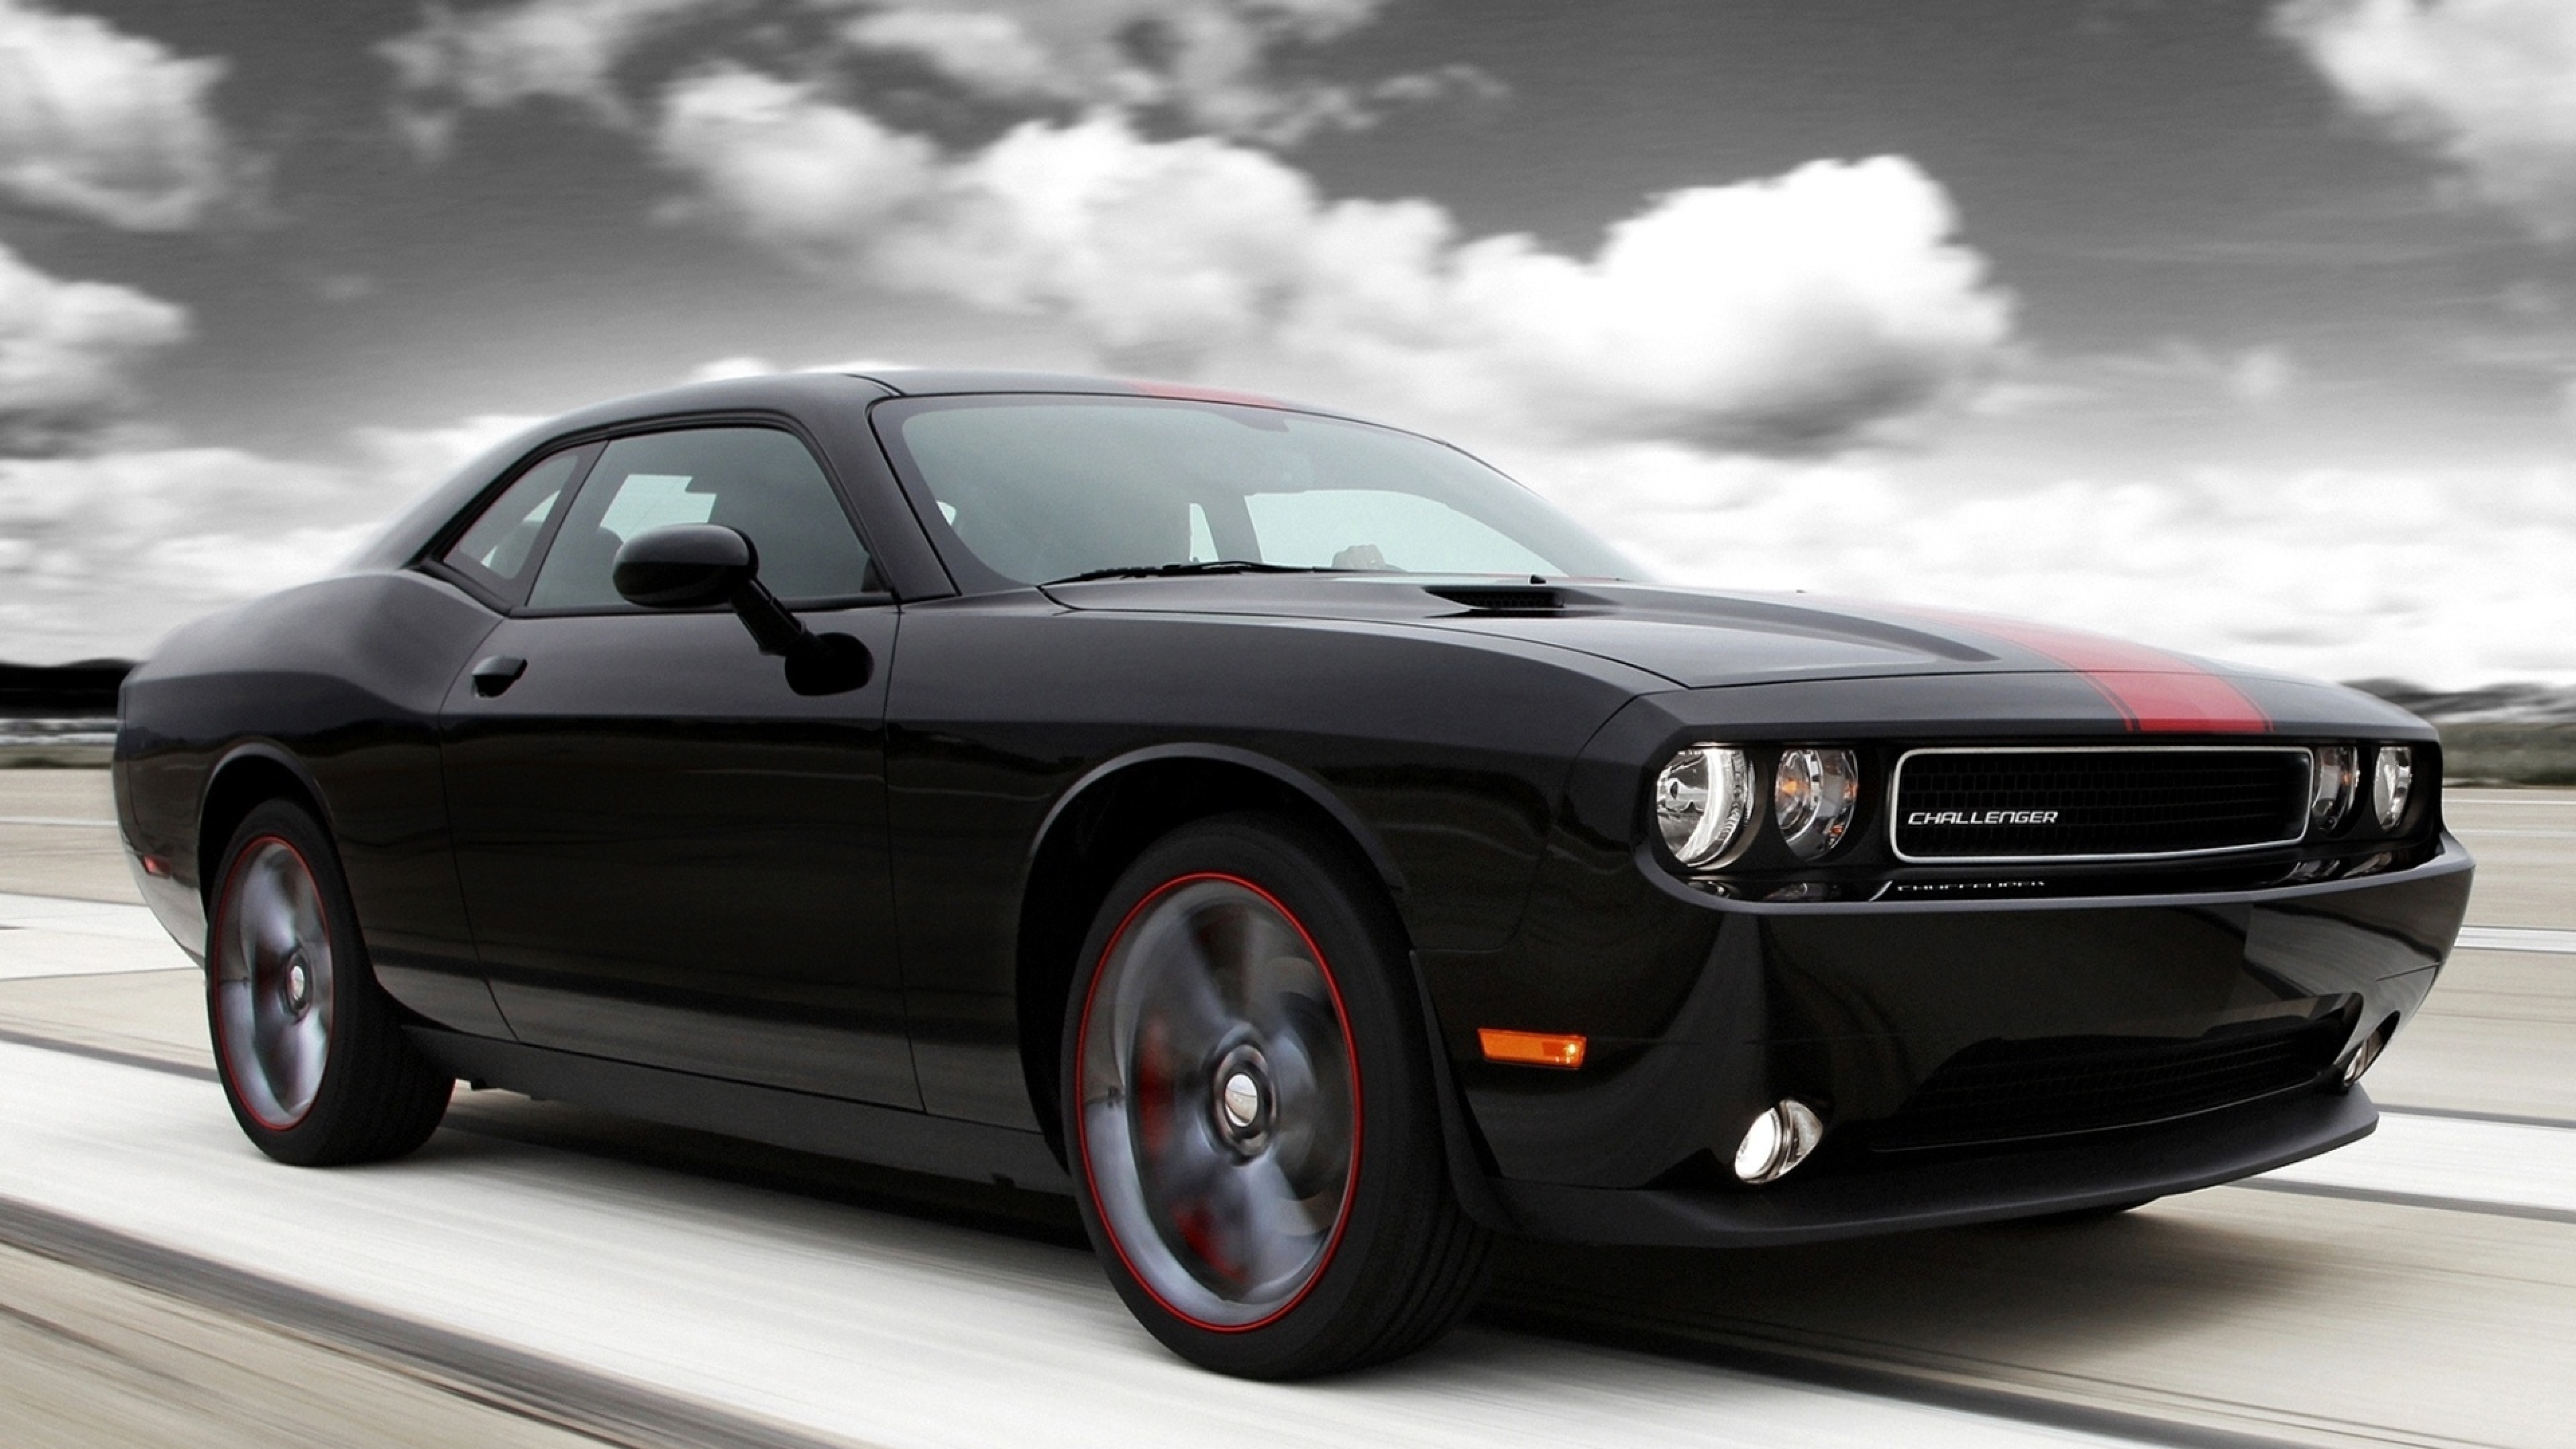 4k Car HD Background Wallpapers 11626   HD Wallpapers Site 3840x2160